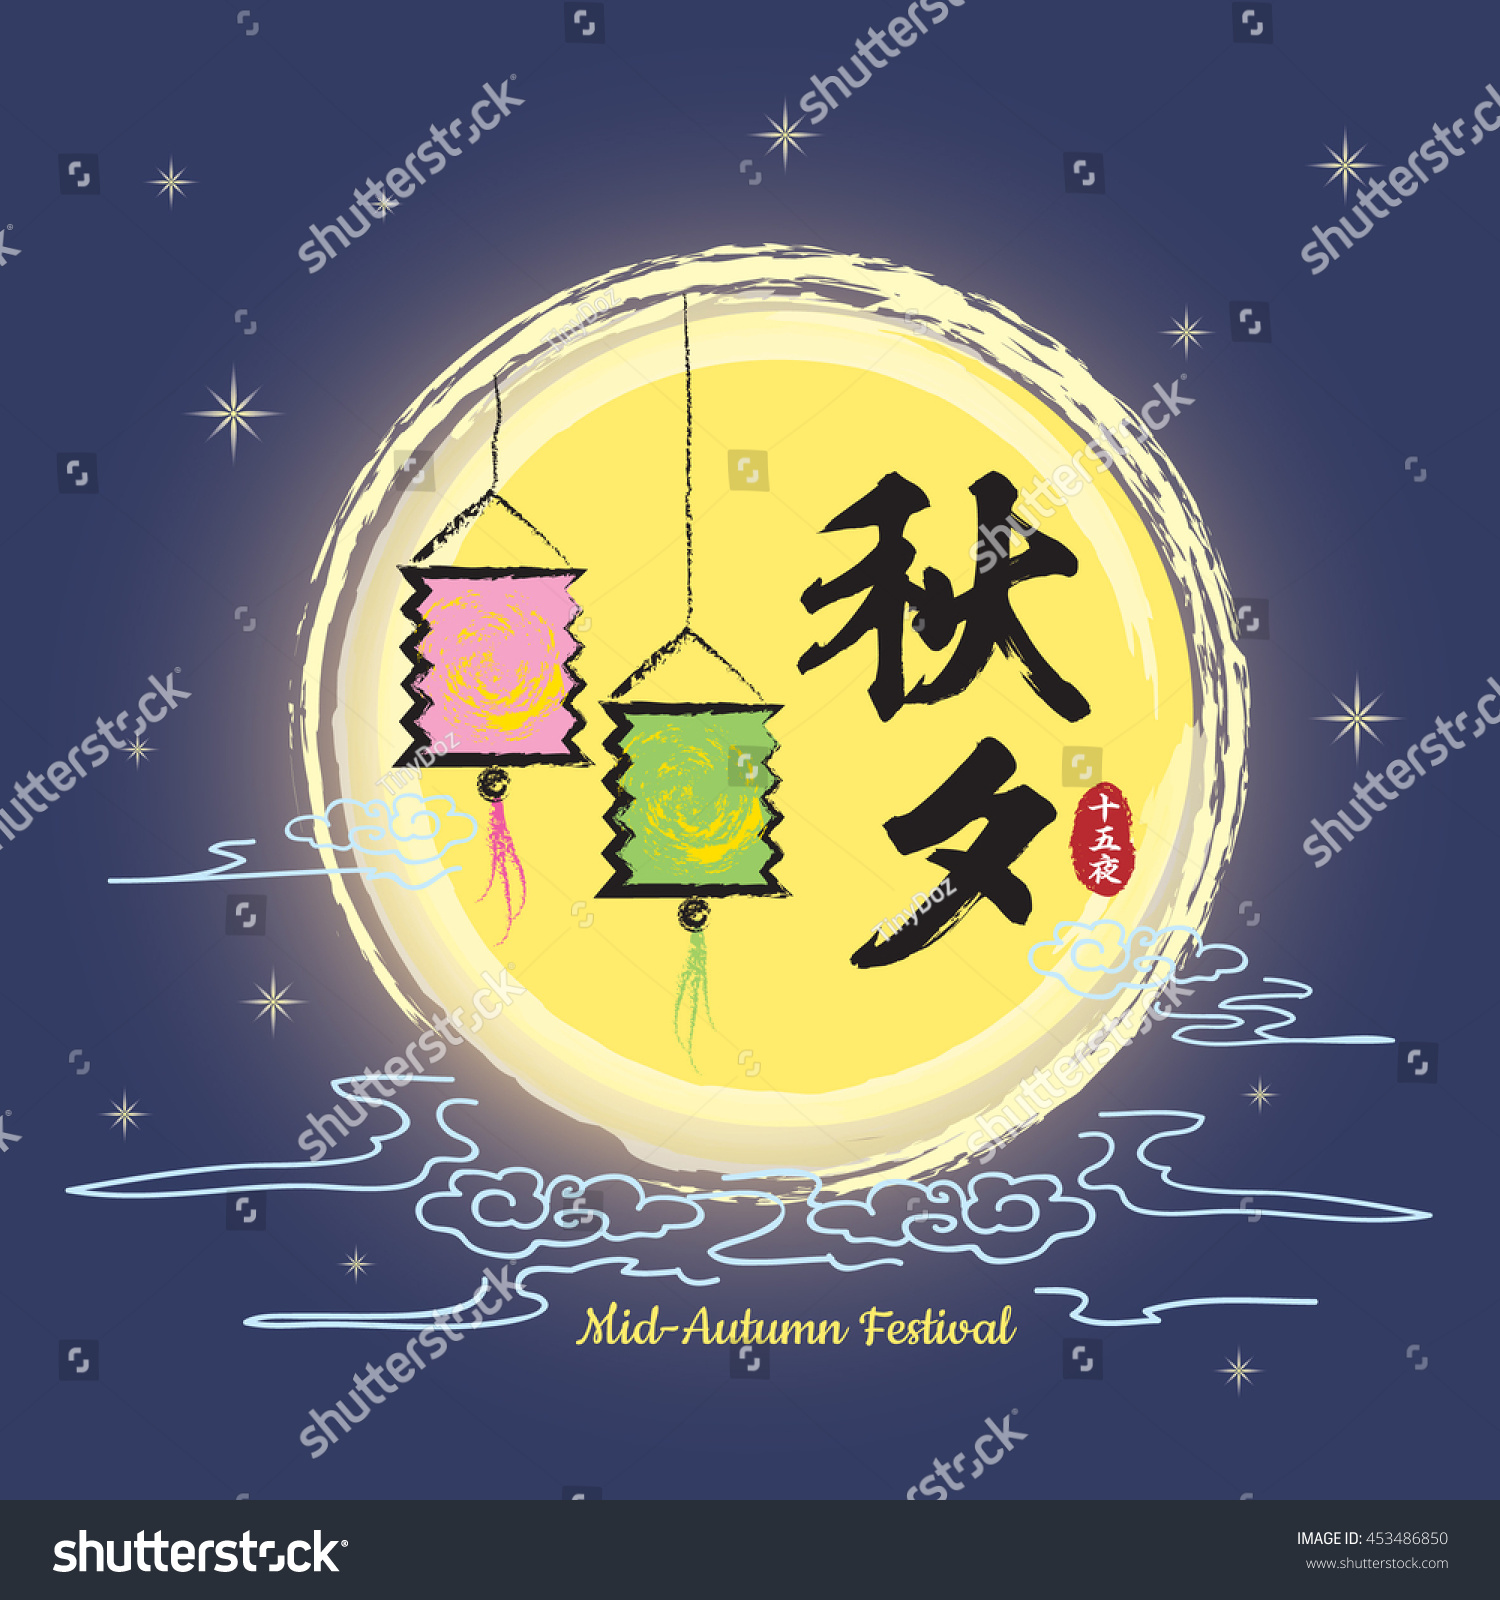 Midautumn festival greeting full moon paper stock vector 453486850 mid autumn festival greeting with full moon and paper lantern on starry night background kristyandbryce Choice Image